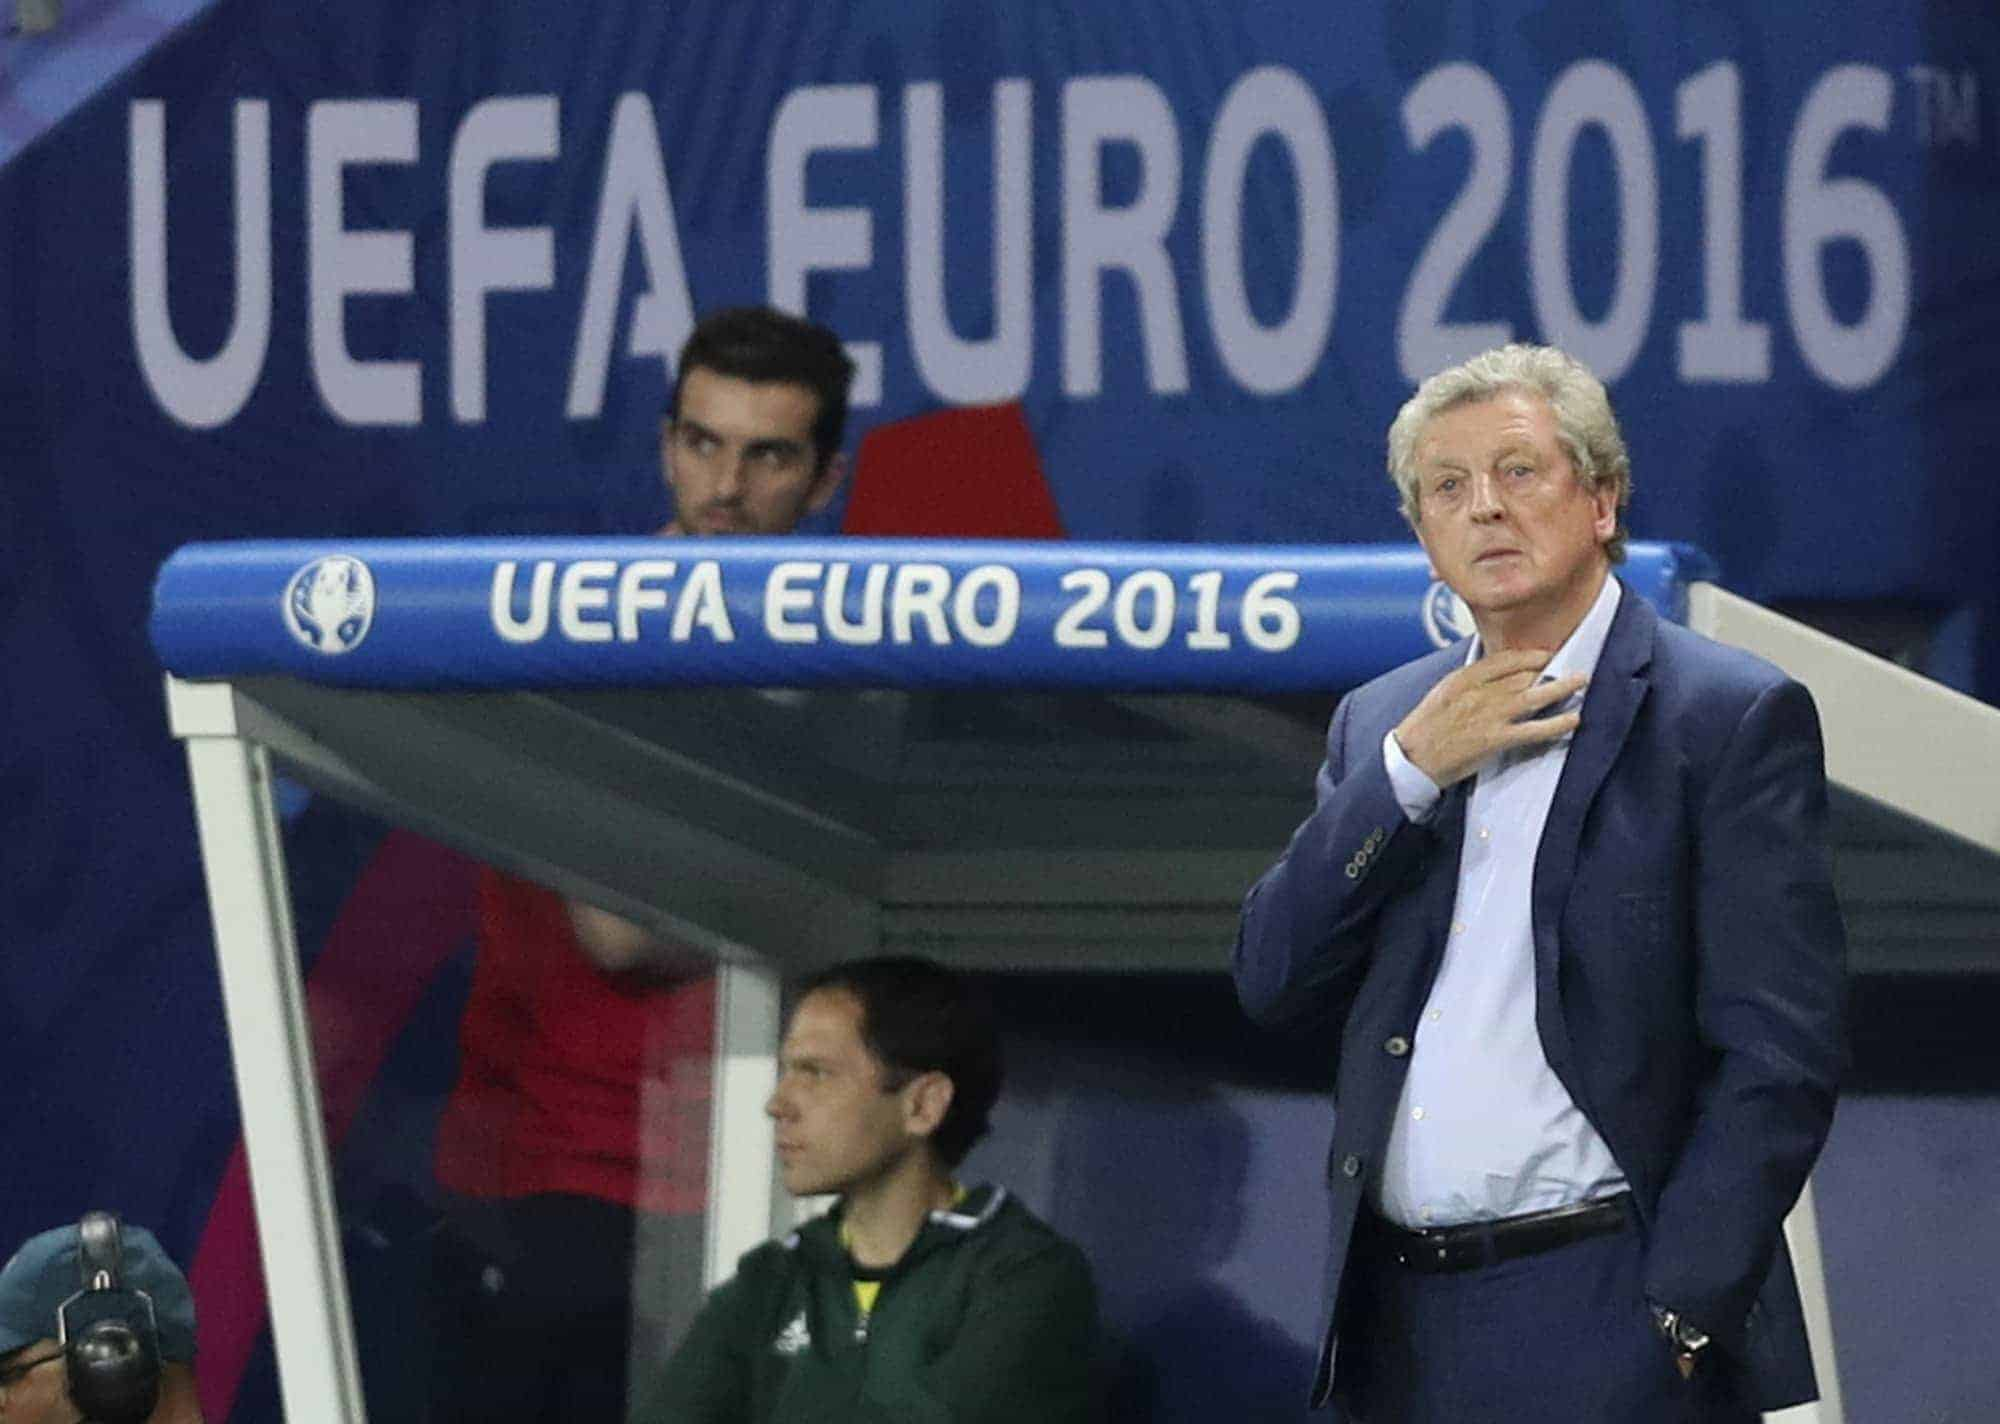 England coach Roy Hodgson stands on the sidelines during the Euro 2016 round of 16 soccer match between England and Iceland, at the Allianz Riviera stadium in Nice, France, Monday, June 27, 2016. (AP Photo/Claude Paris)